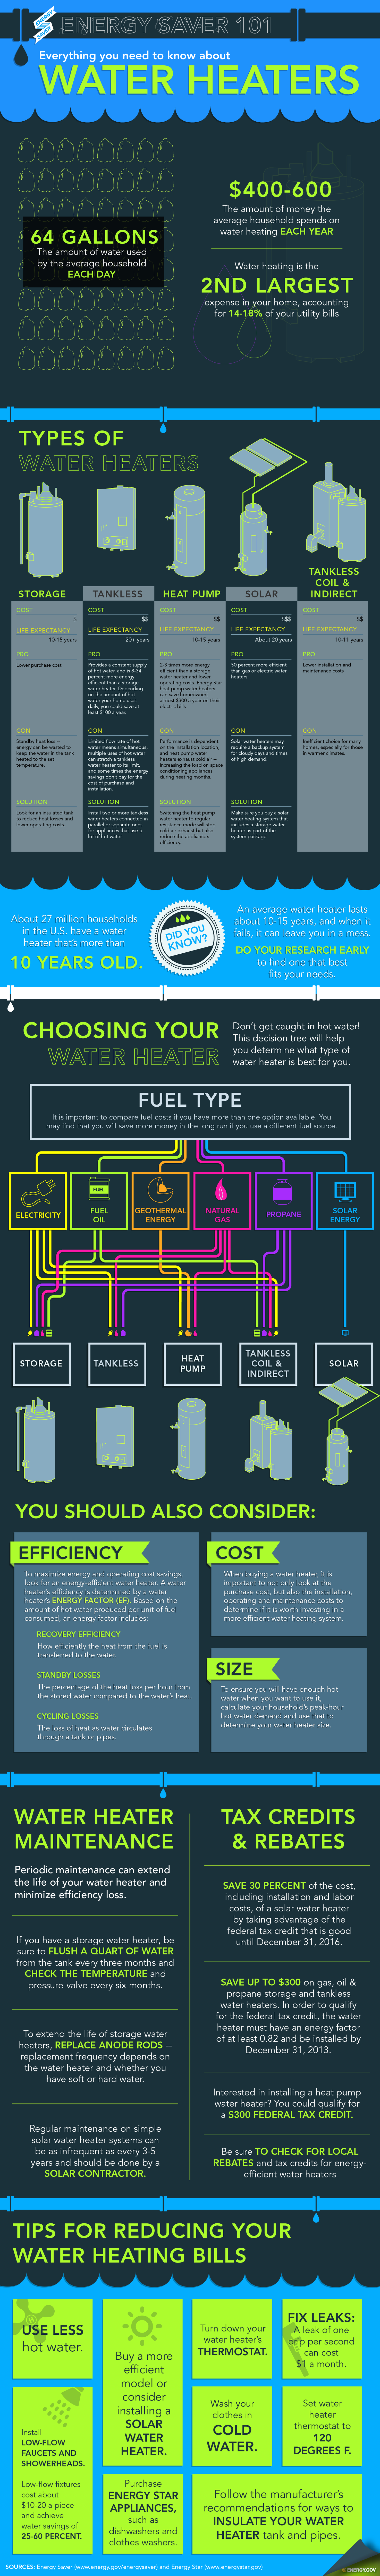 Water Heaters 101 Infographic